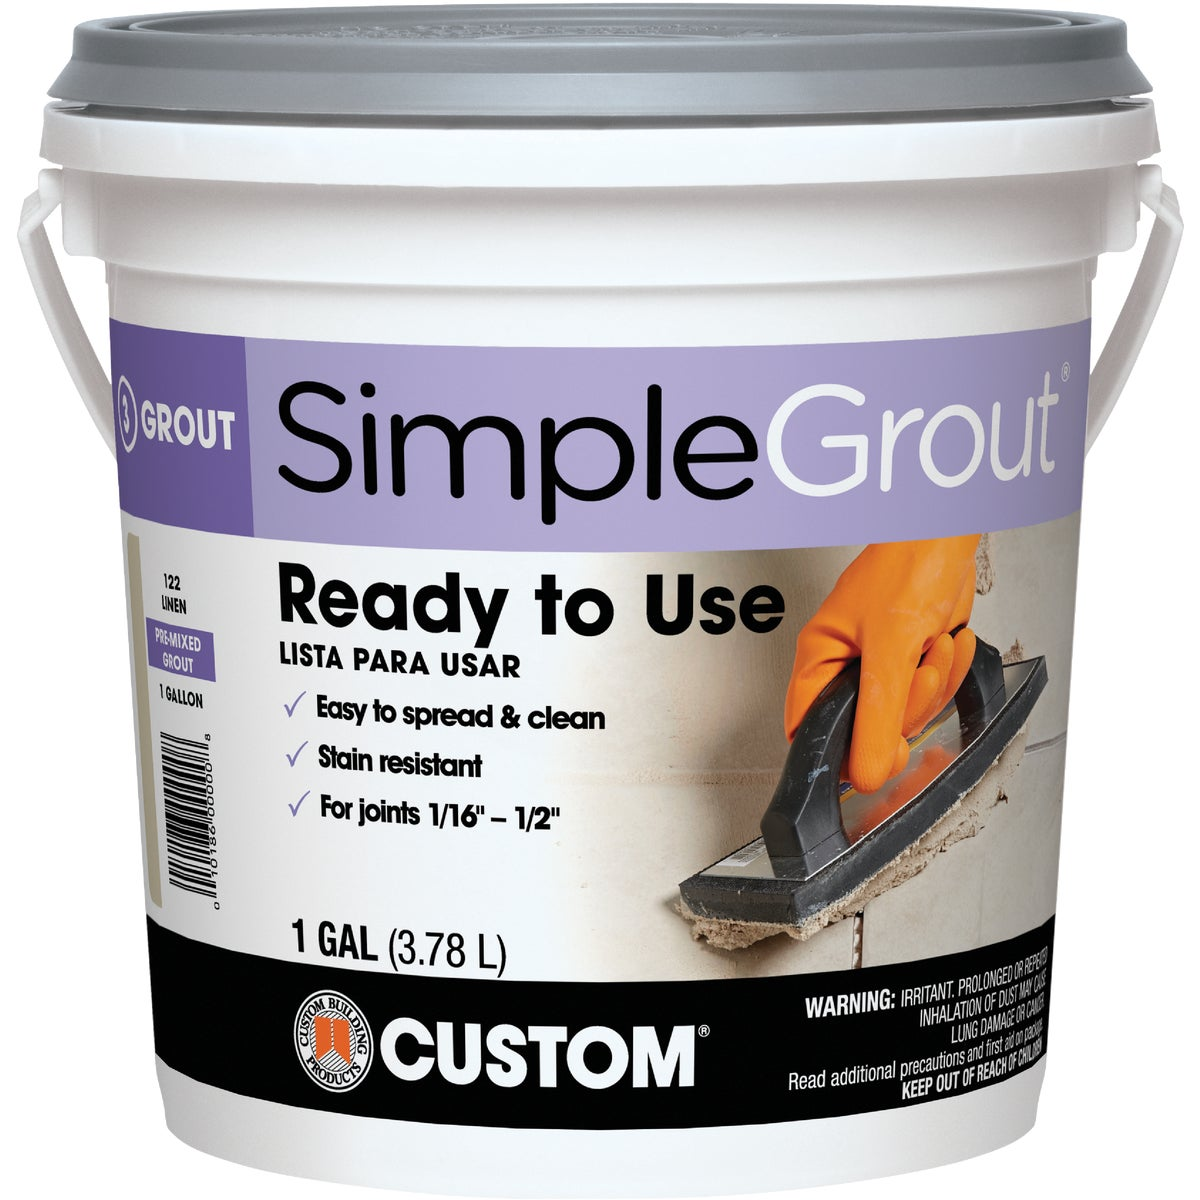 GAL DL GRAY PREMIX GROUT